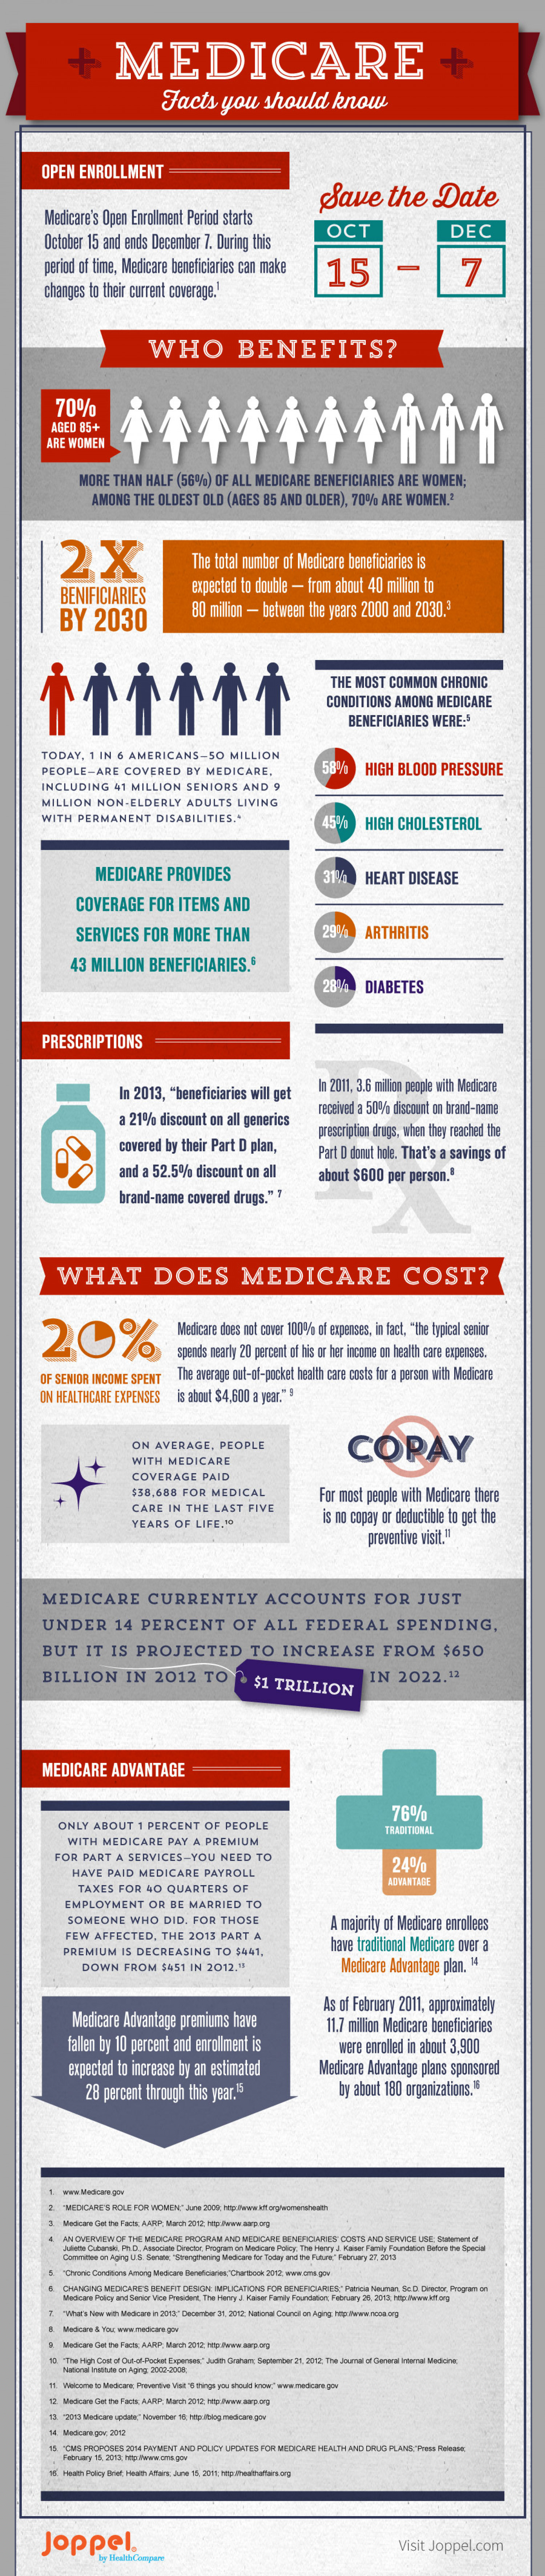 Medicare Insurance Facts Infographic